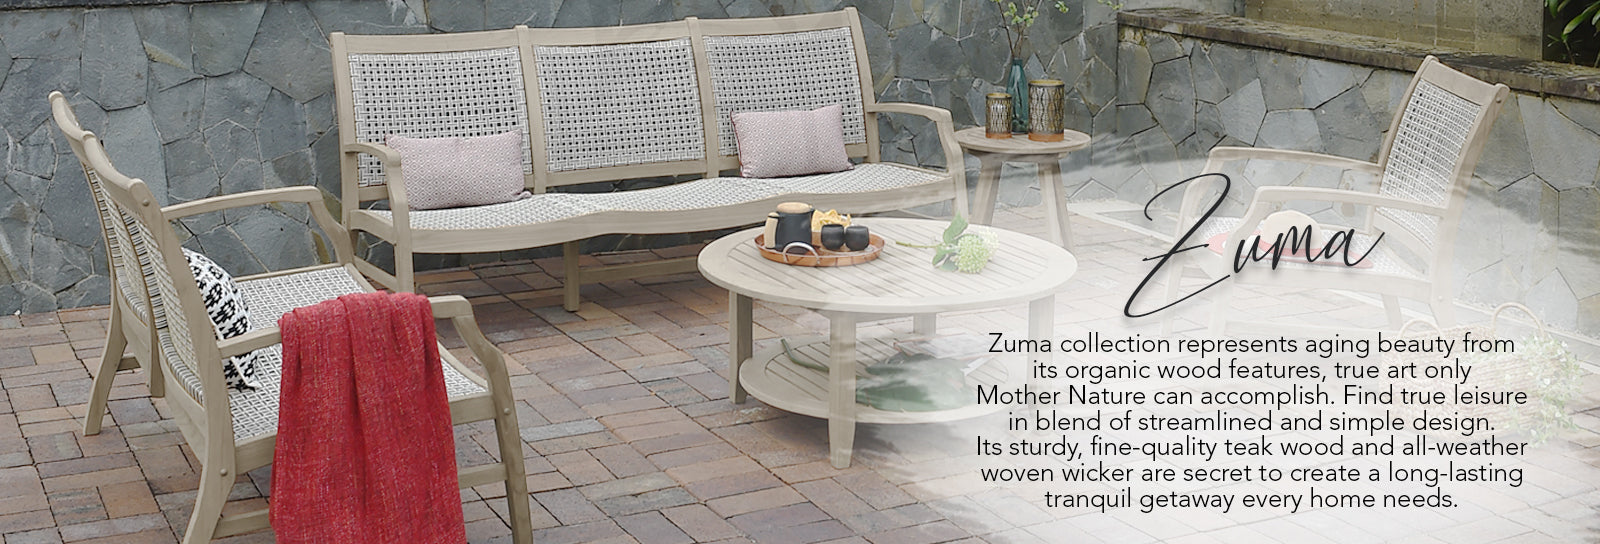 Find true leisure in blend of streamlined and simple design. Its sturdy, fine-quality teak wood and all-weather woven wicker are secret to create a long-lasting tranquil getaway every home needs.